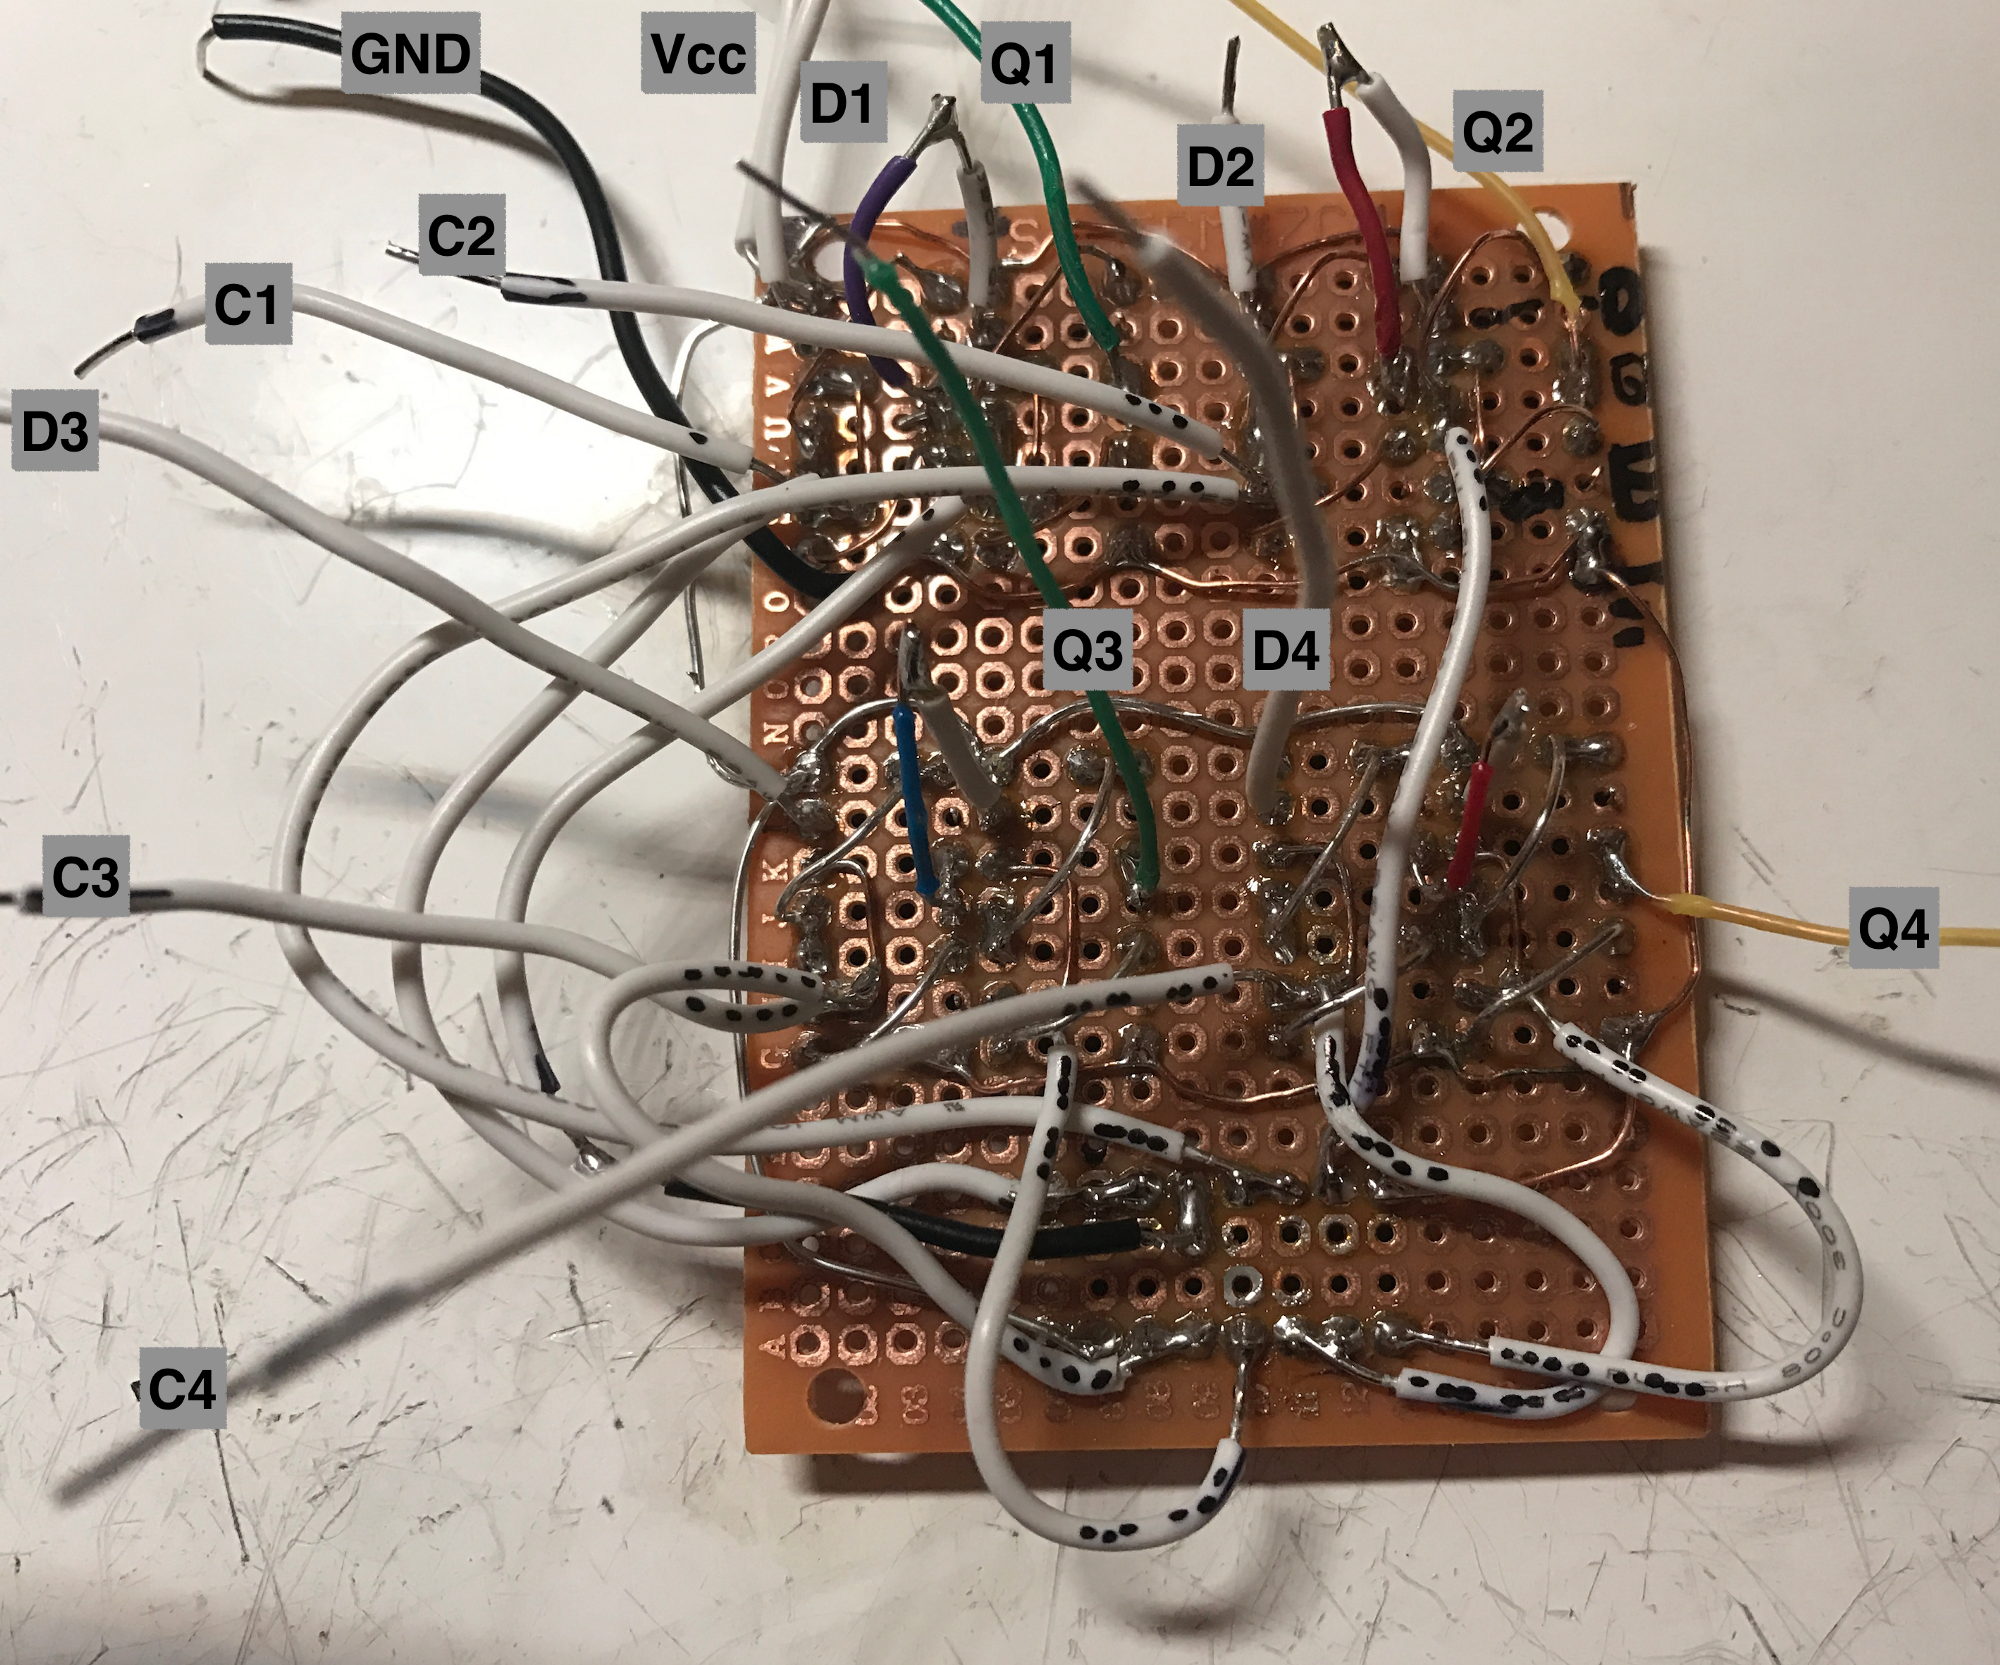 Building A 4 Bit Shift Register From 7400 Nand Gates For Gpio Output 7 Segment Decoder Logic Diagram The Hardest Step Is Completed Now It Only Matter Of Chaining Master Slave Flip Flops Into